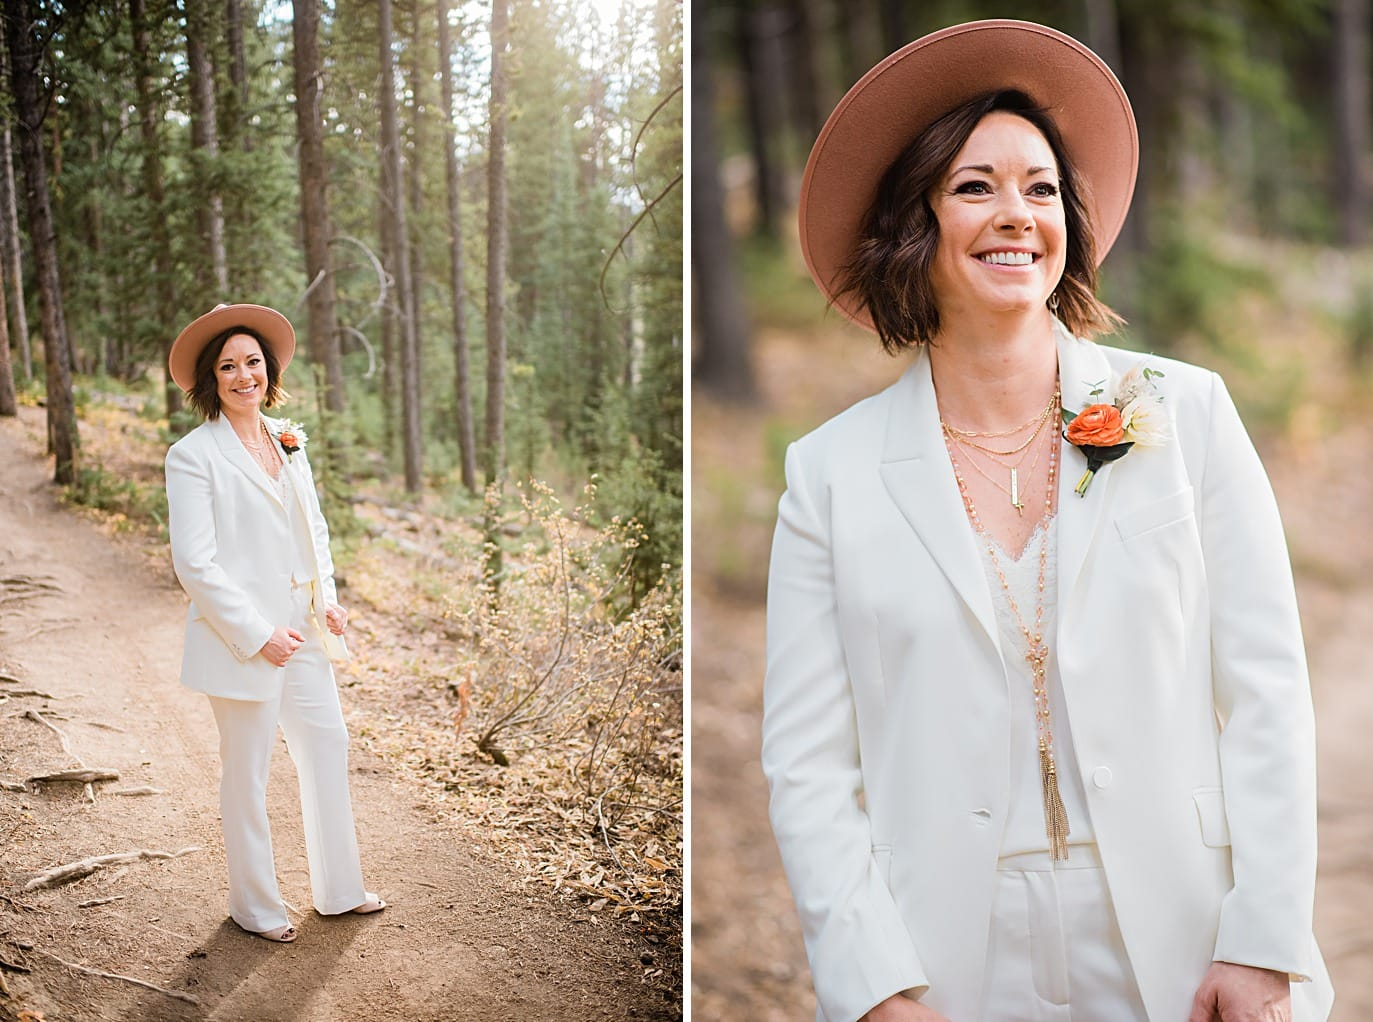 bride in white suit and pink hat at Breckenridge microwedding by Colorado LGBT wedding photographer Jennie Crate